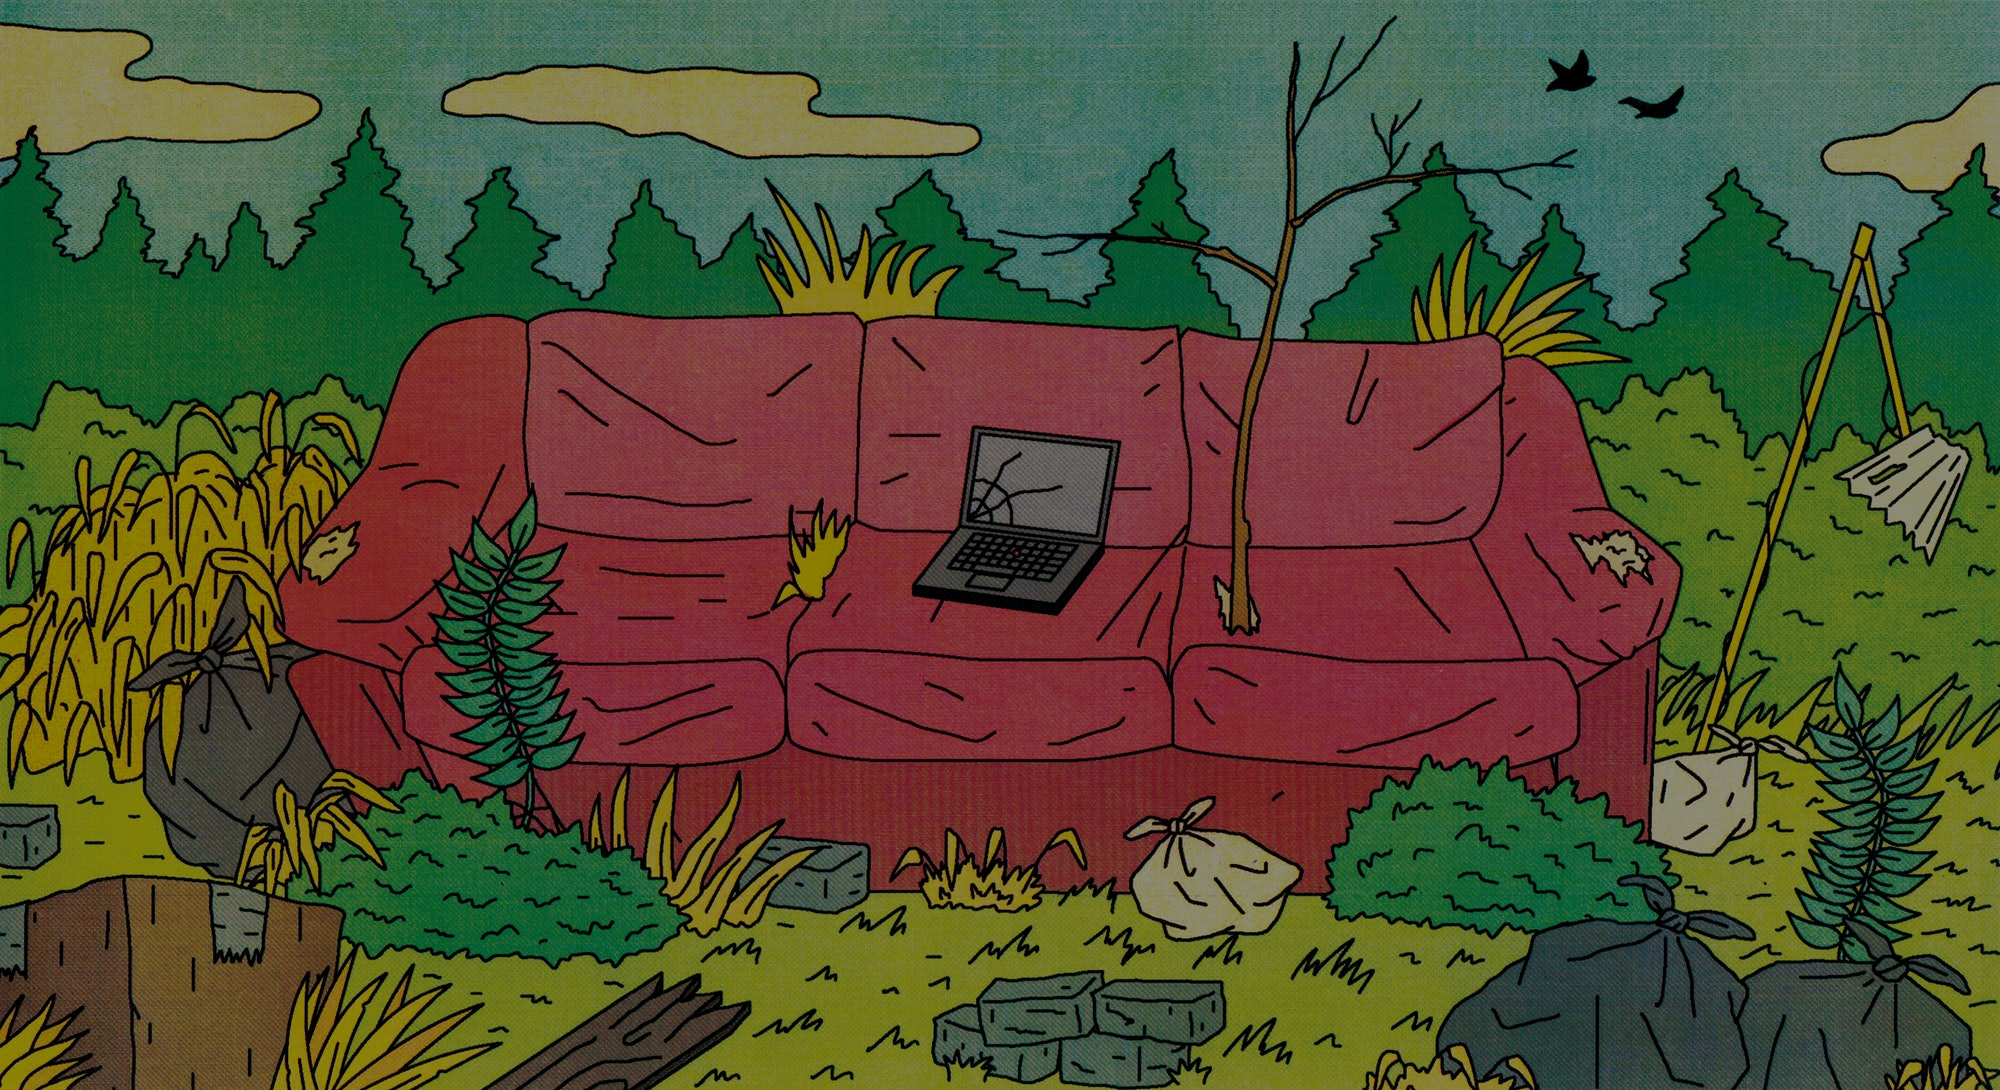 An illustration of an old ruined couch in the wilderness amid trash